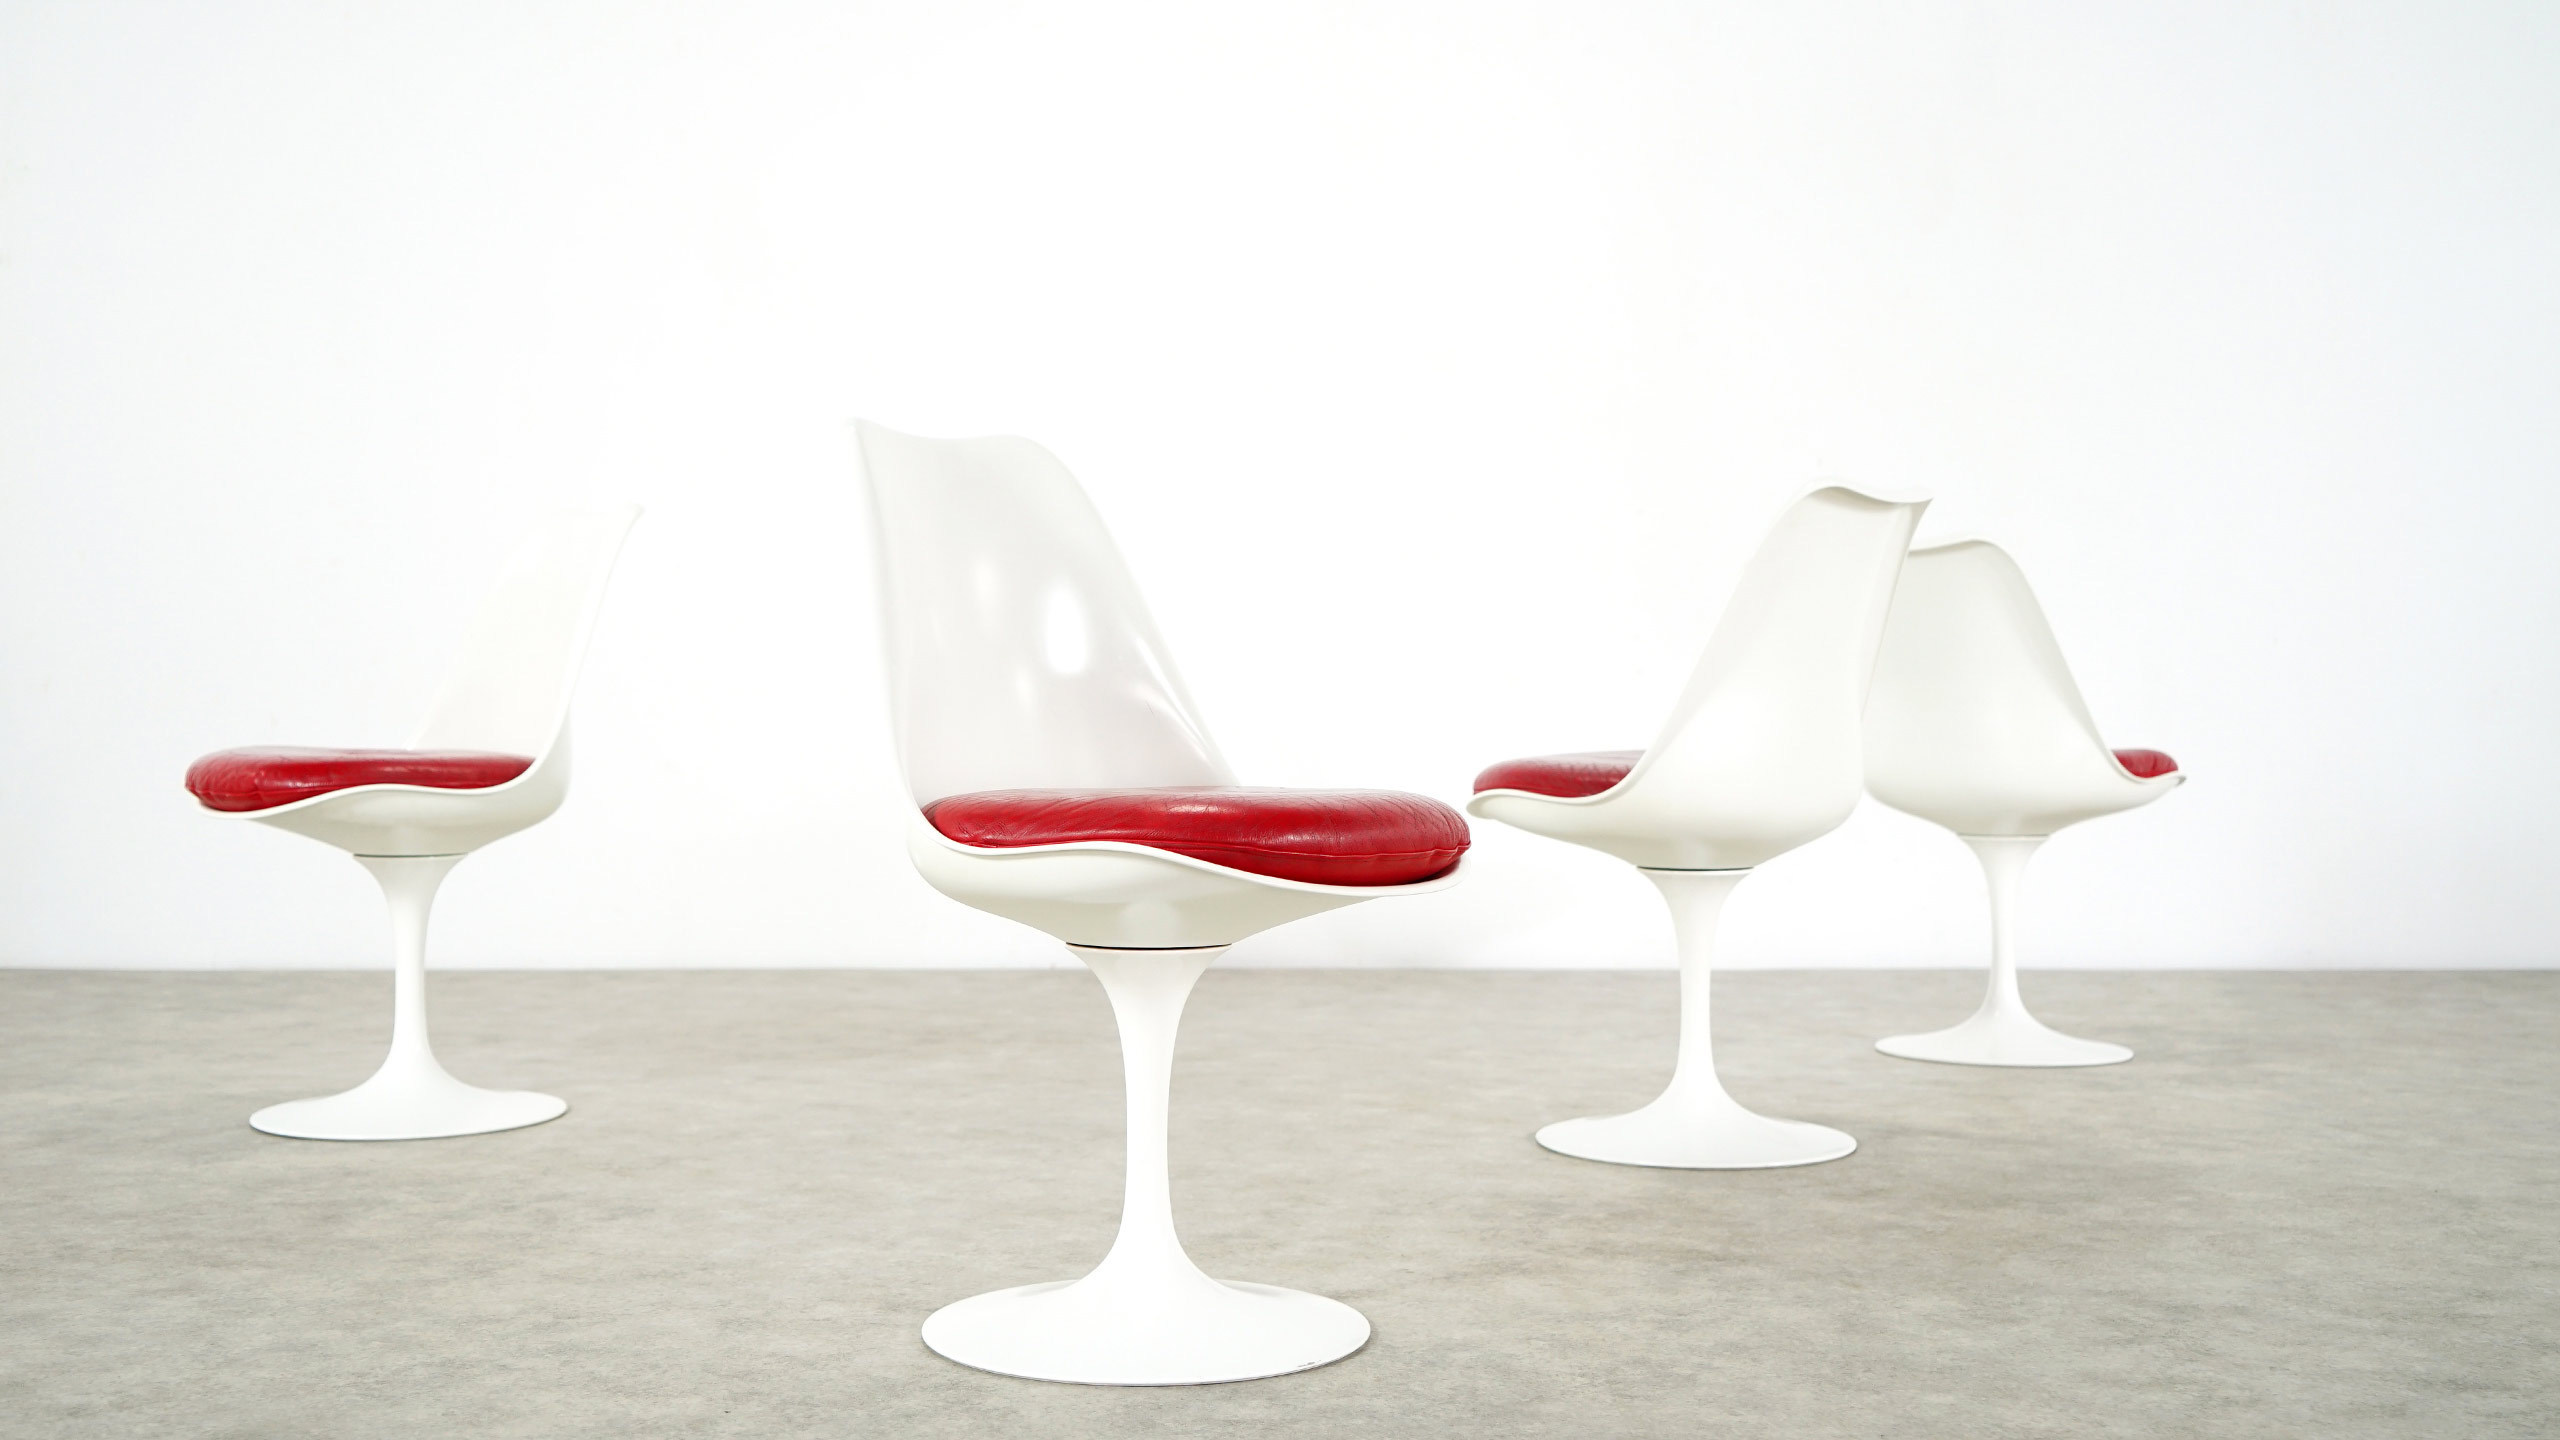 saarinen tulip chair. maße: w 19.29 inch, h 31.89 d 20.87 inch: 49 cm, 81 53 cm; designer: eero saarinen; hersteller: knoll international; preis: 3800,-\u20ac saarinen tulip chair